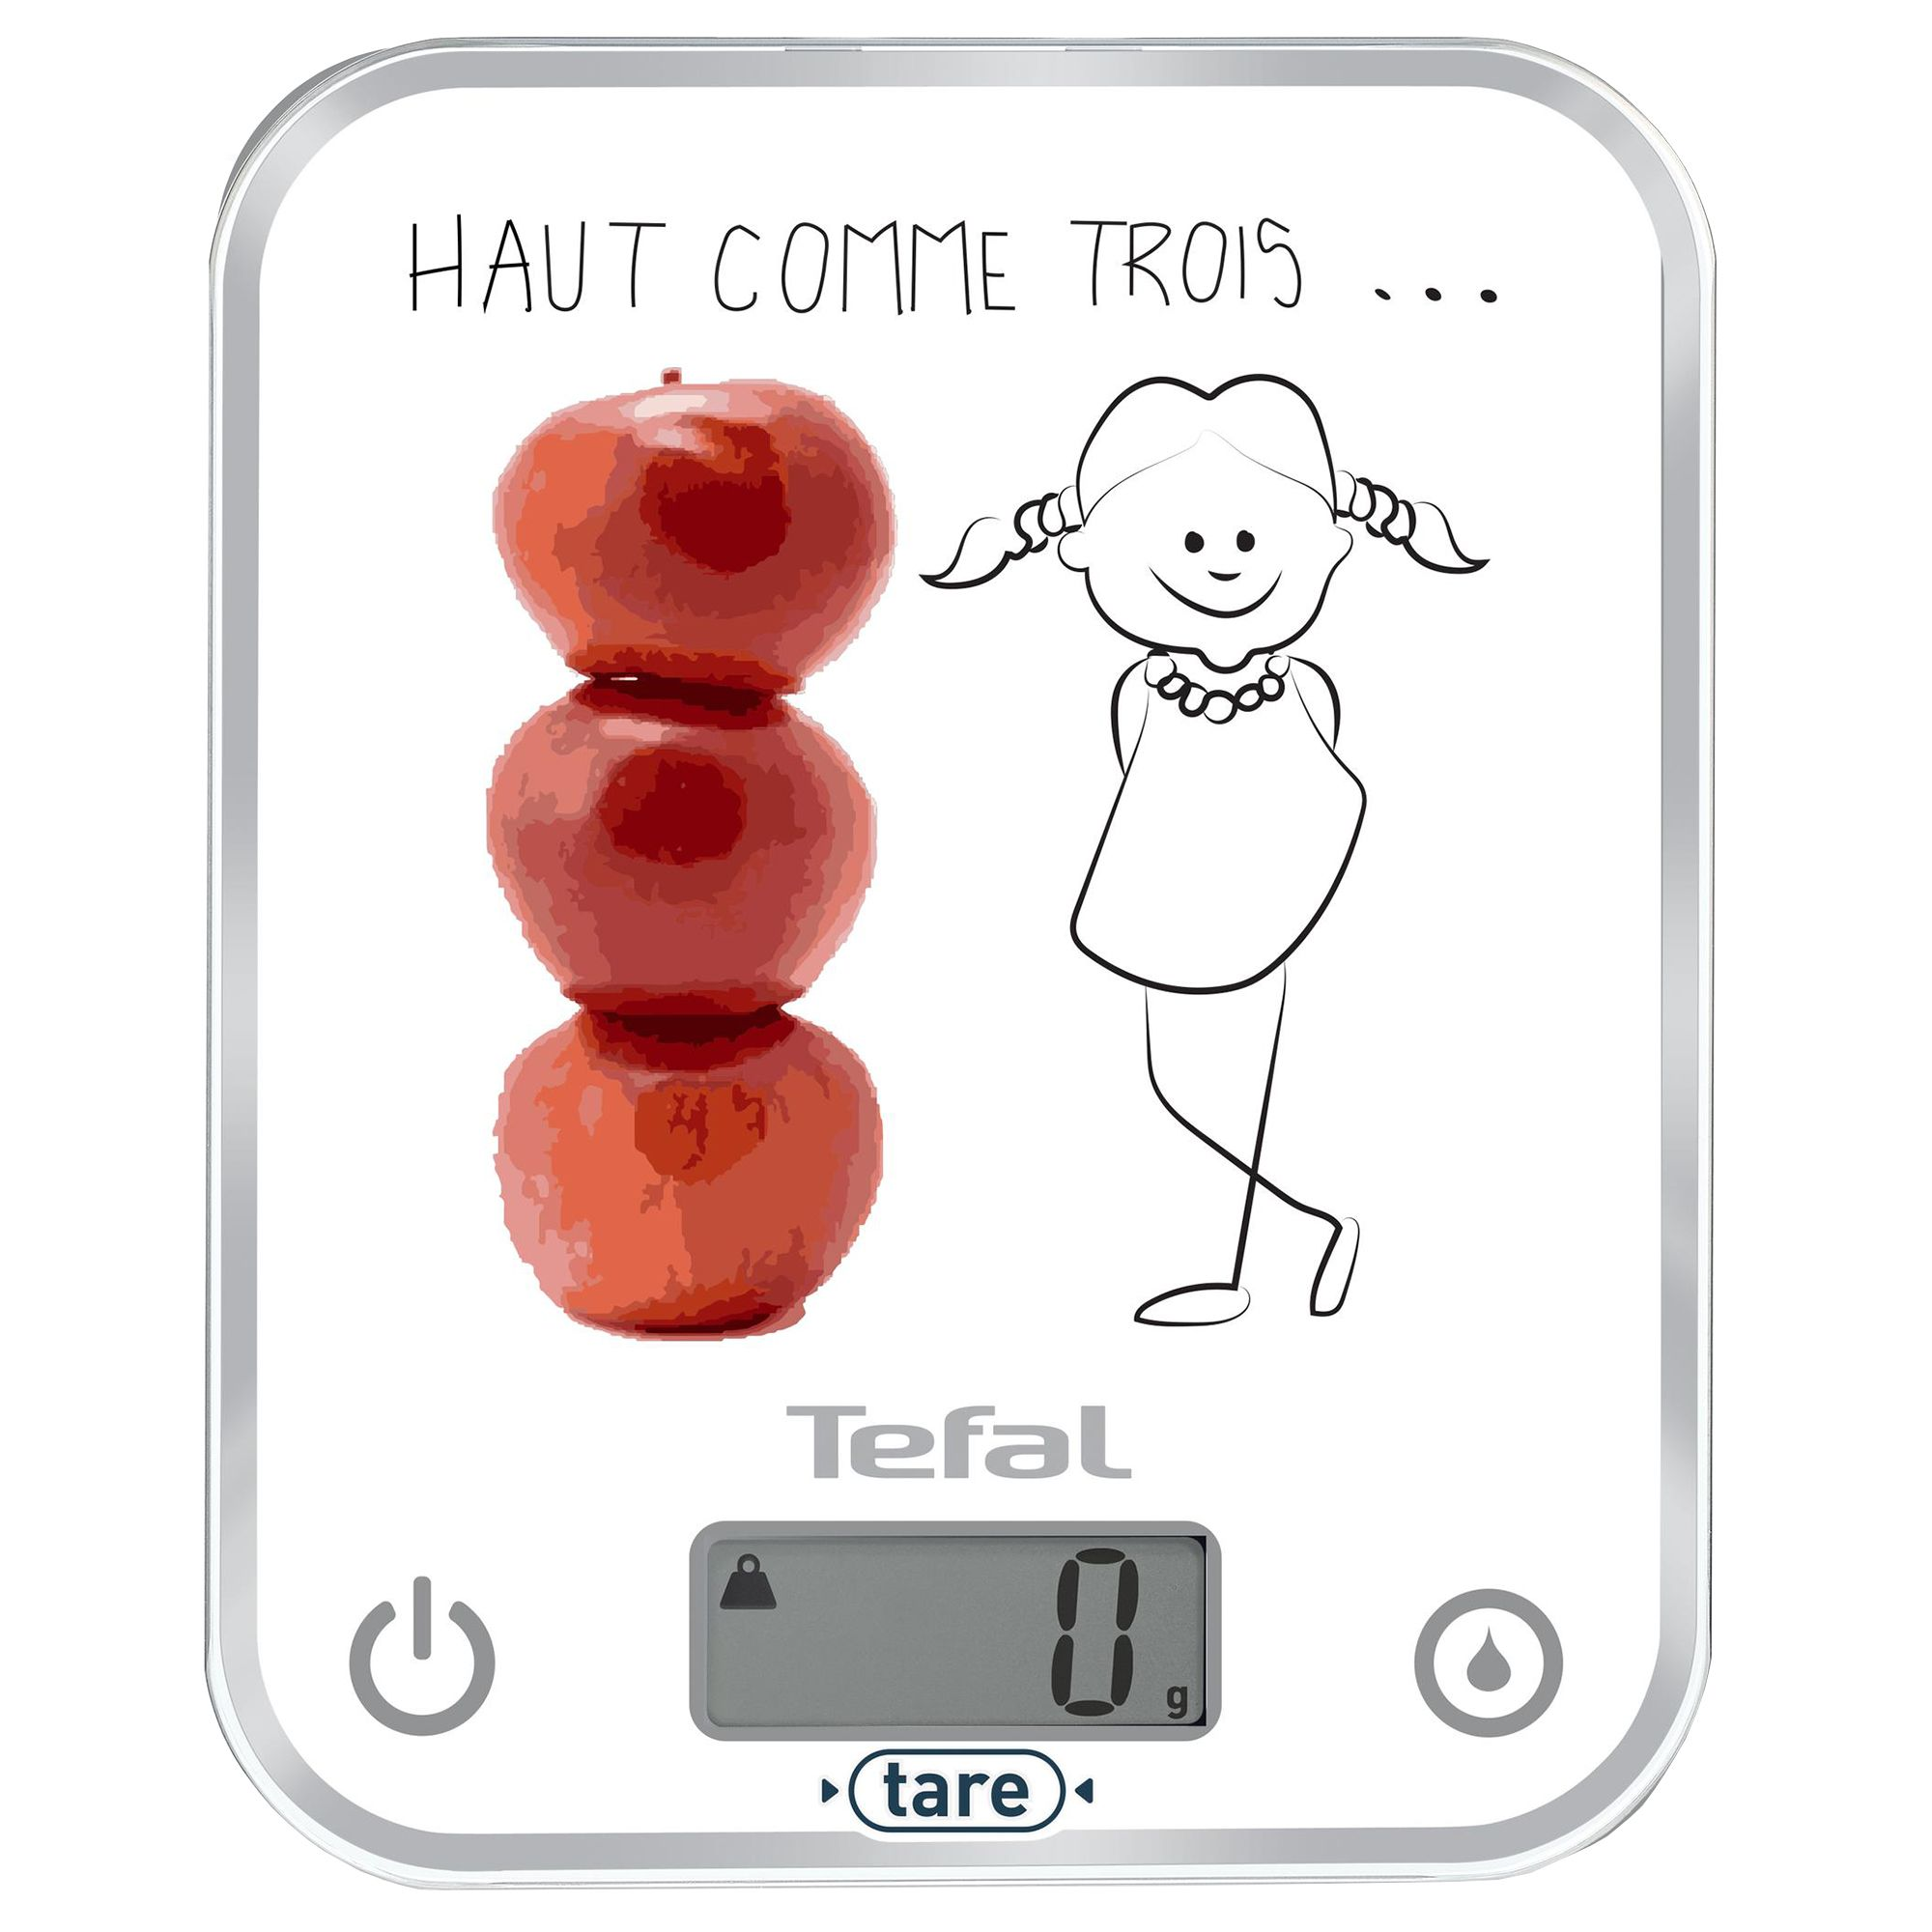 Cantar de bucatarie Tefal Optiss Decor BC5134V0, capacitate 5kg, 1g, tara, tip baterie AAA, Alb/Abstract